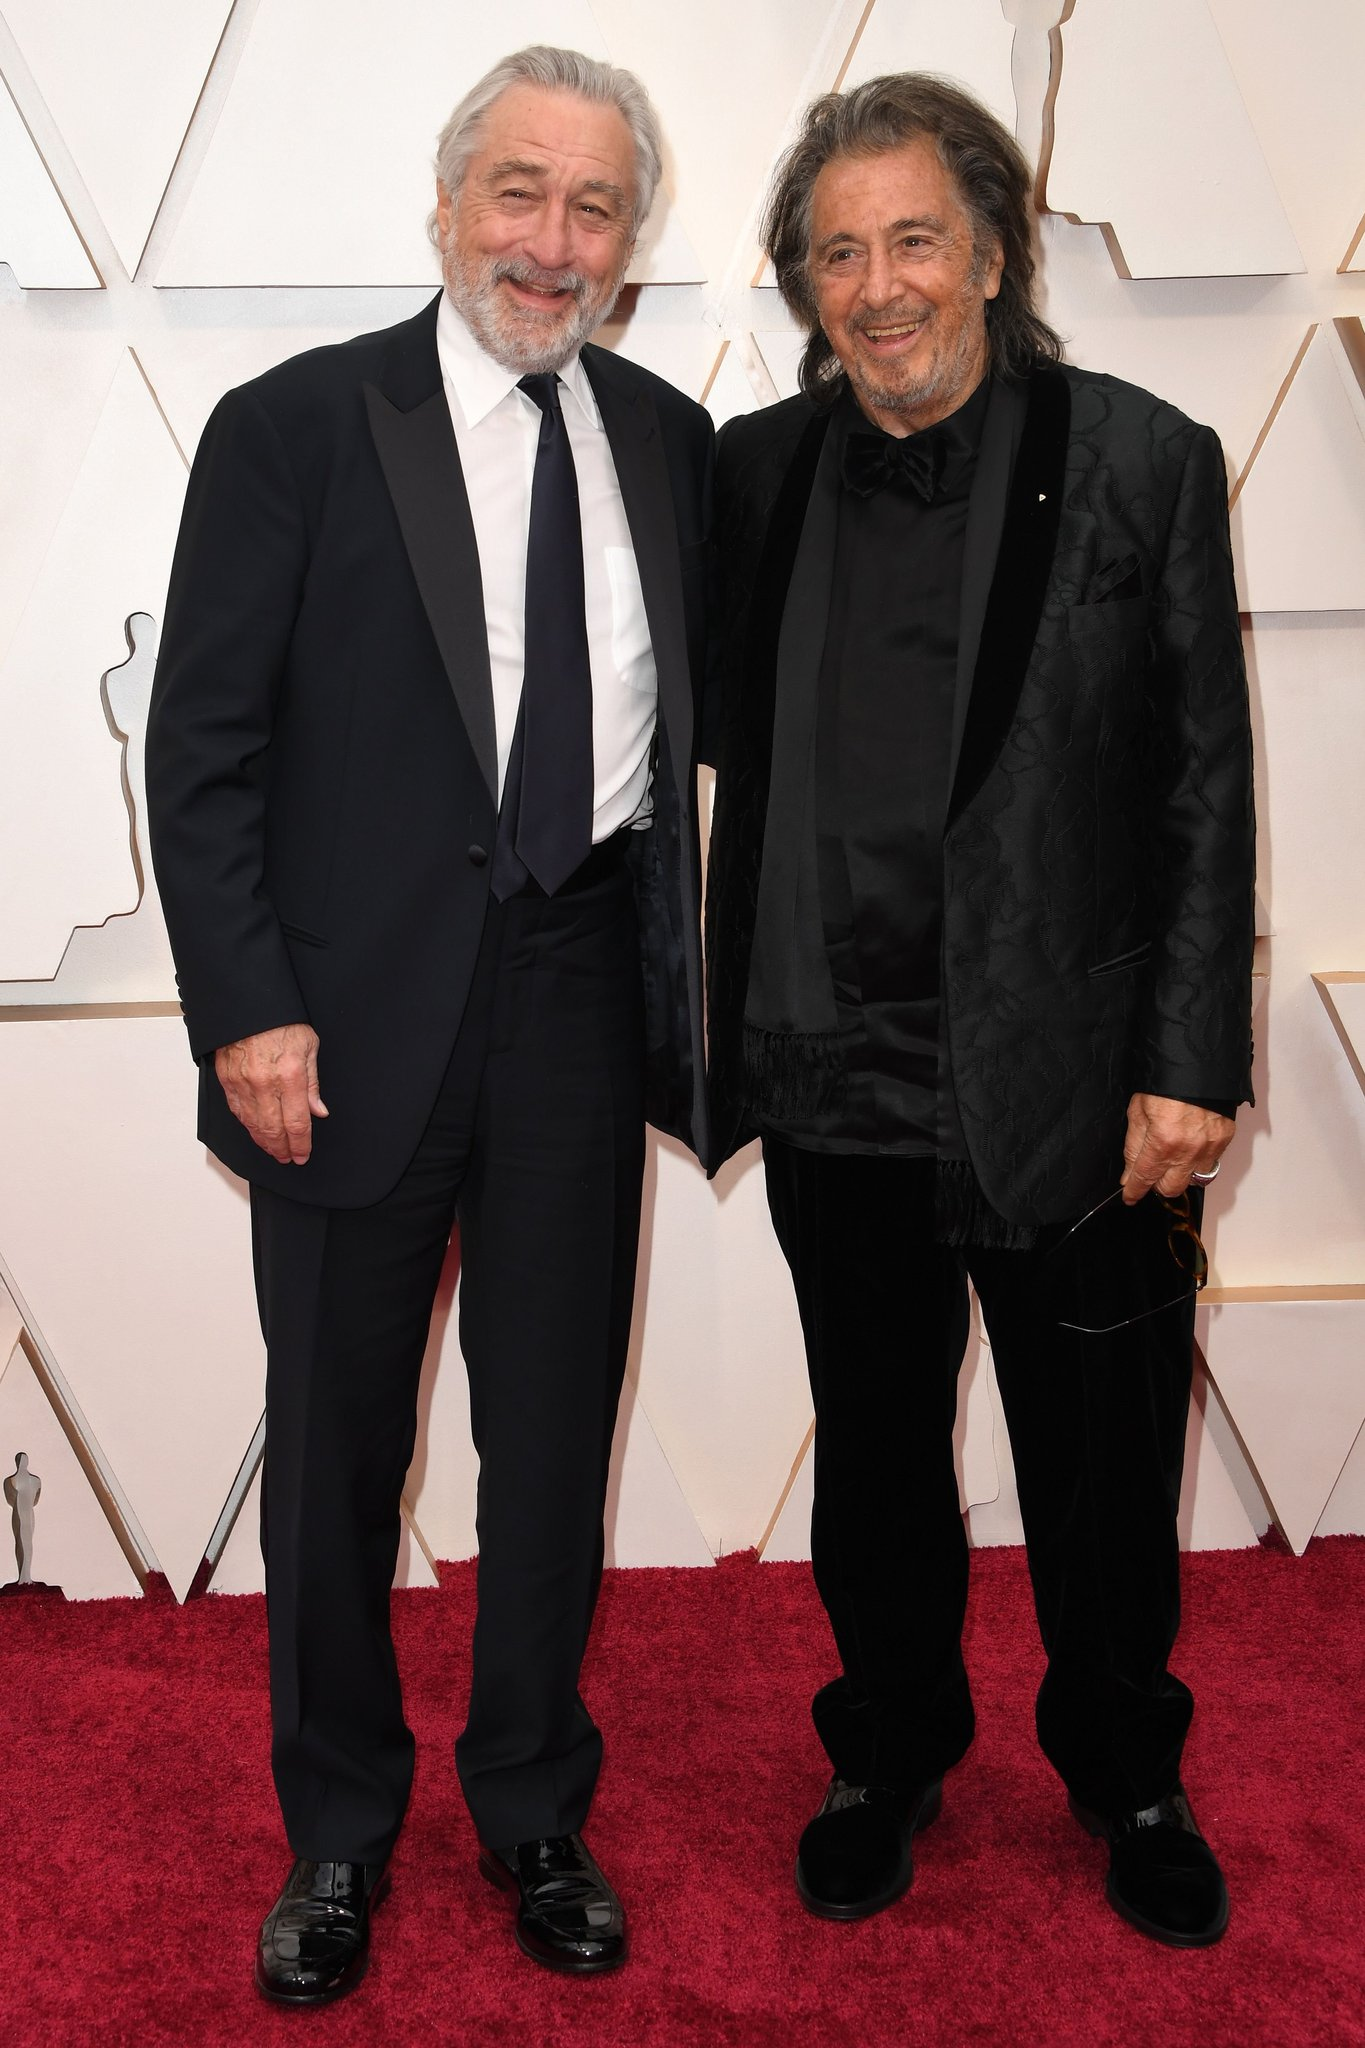 Robert DeNiro and Al Pacino